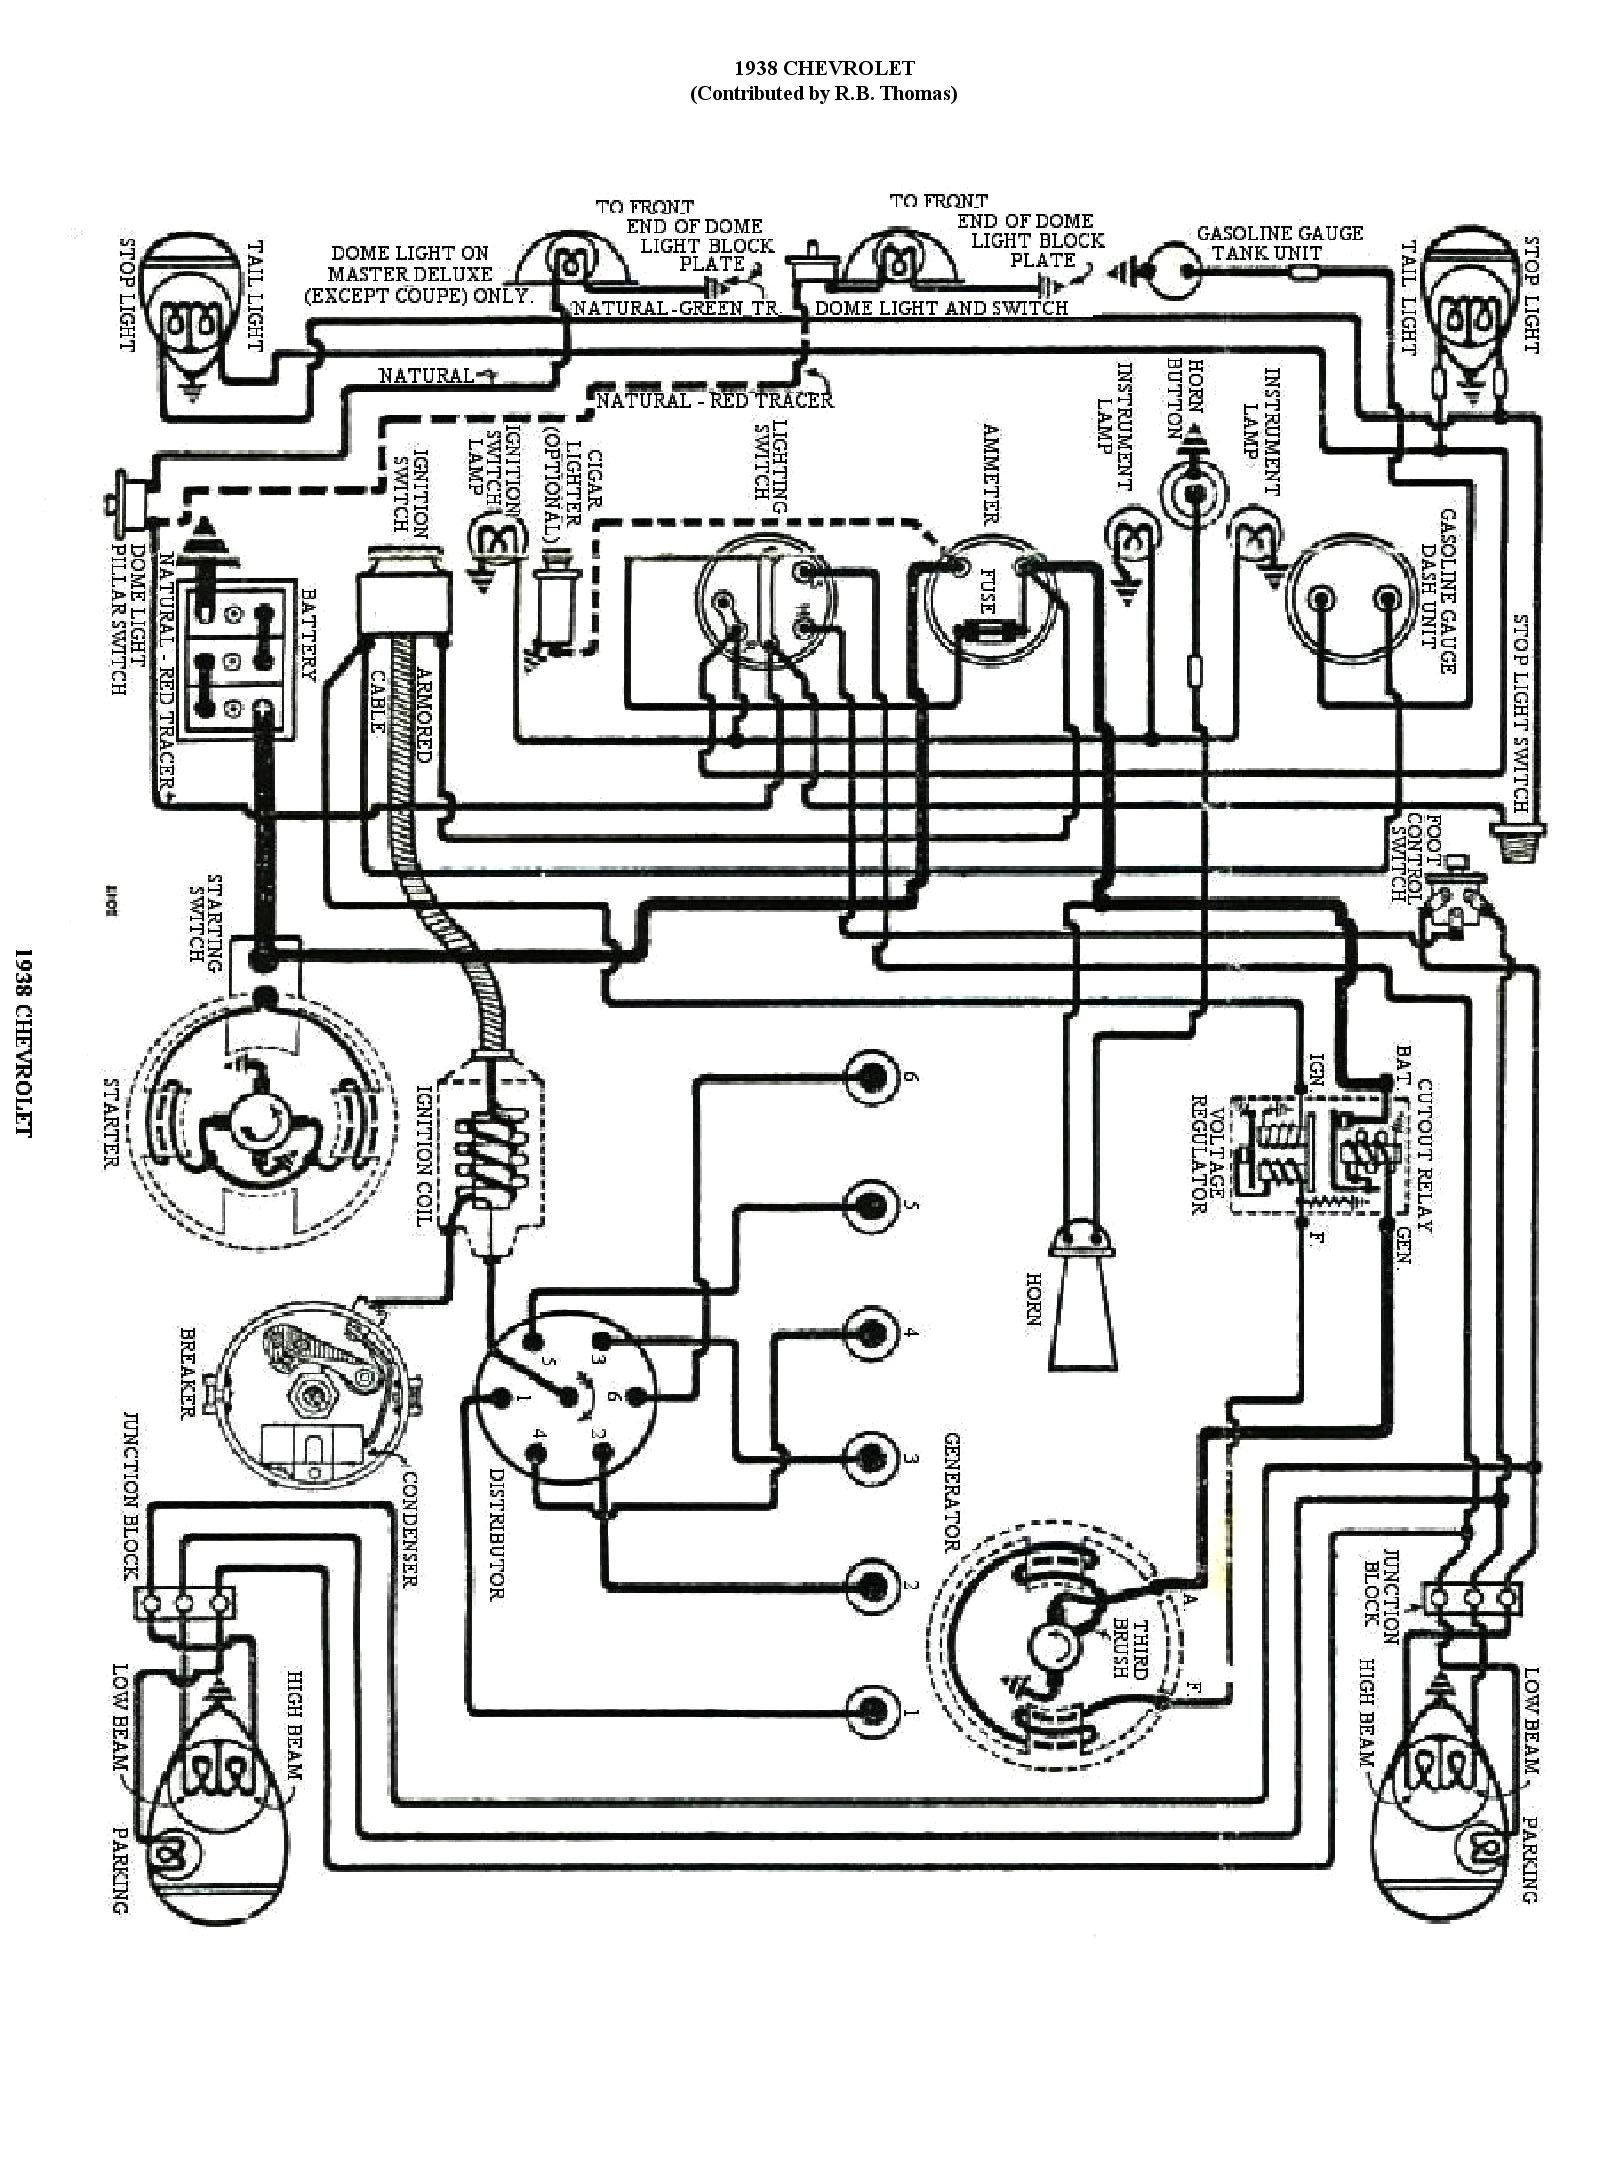 38wiring chevy wiring diagrams Chevy Truck Wiring Harness at soozxer.org